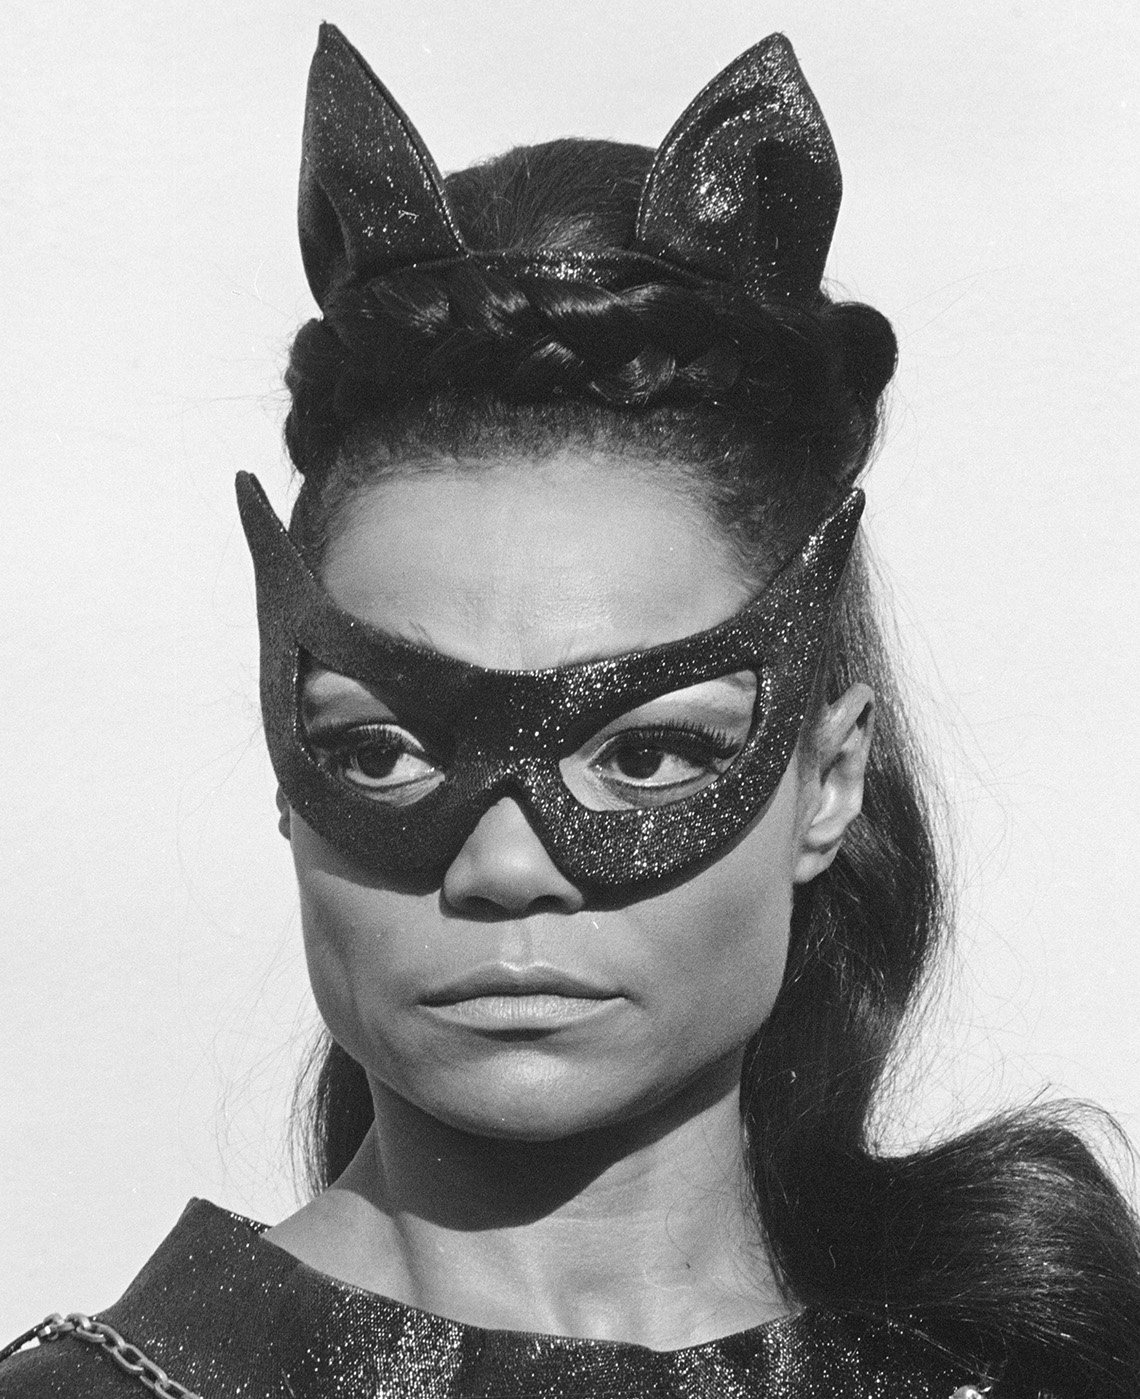 Eartha Kitt stars as The Catwoman in the TV series Batman